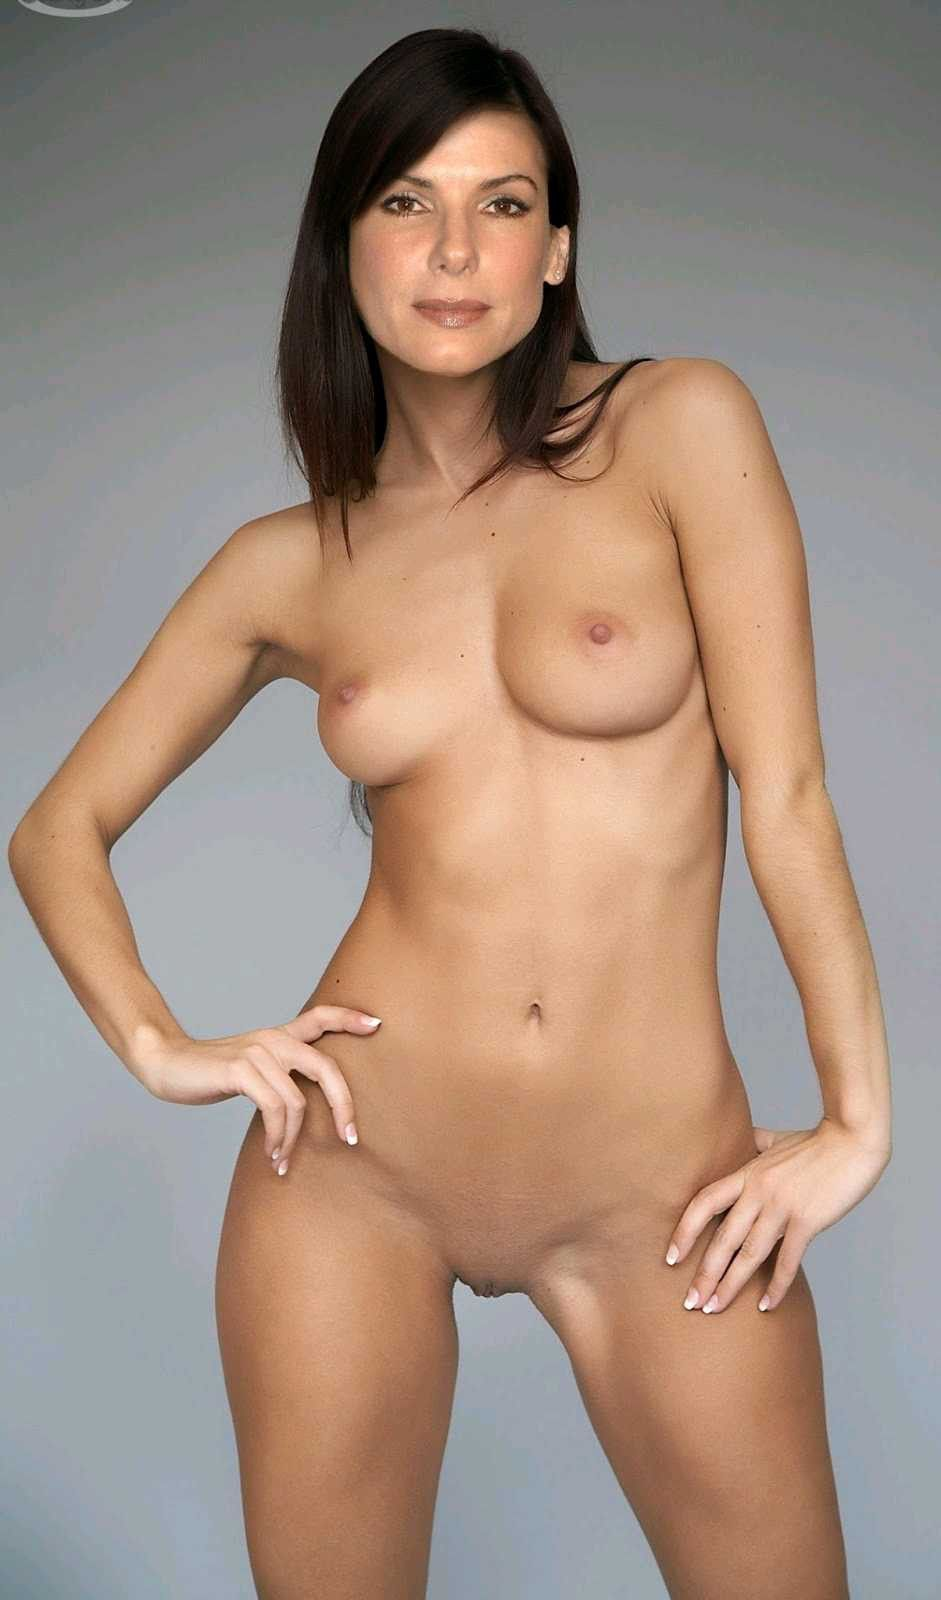 Pice young porn very bra hot star